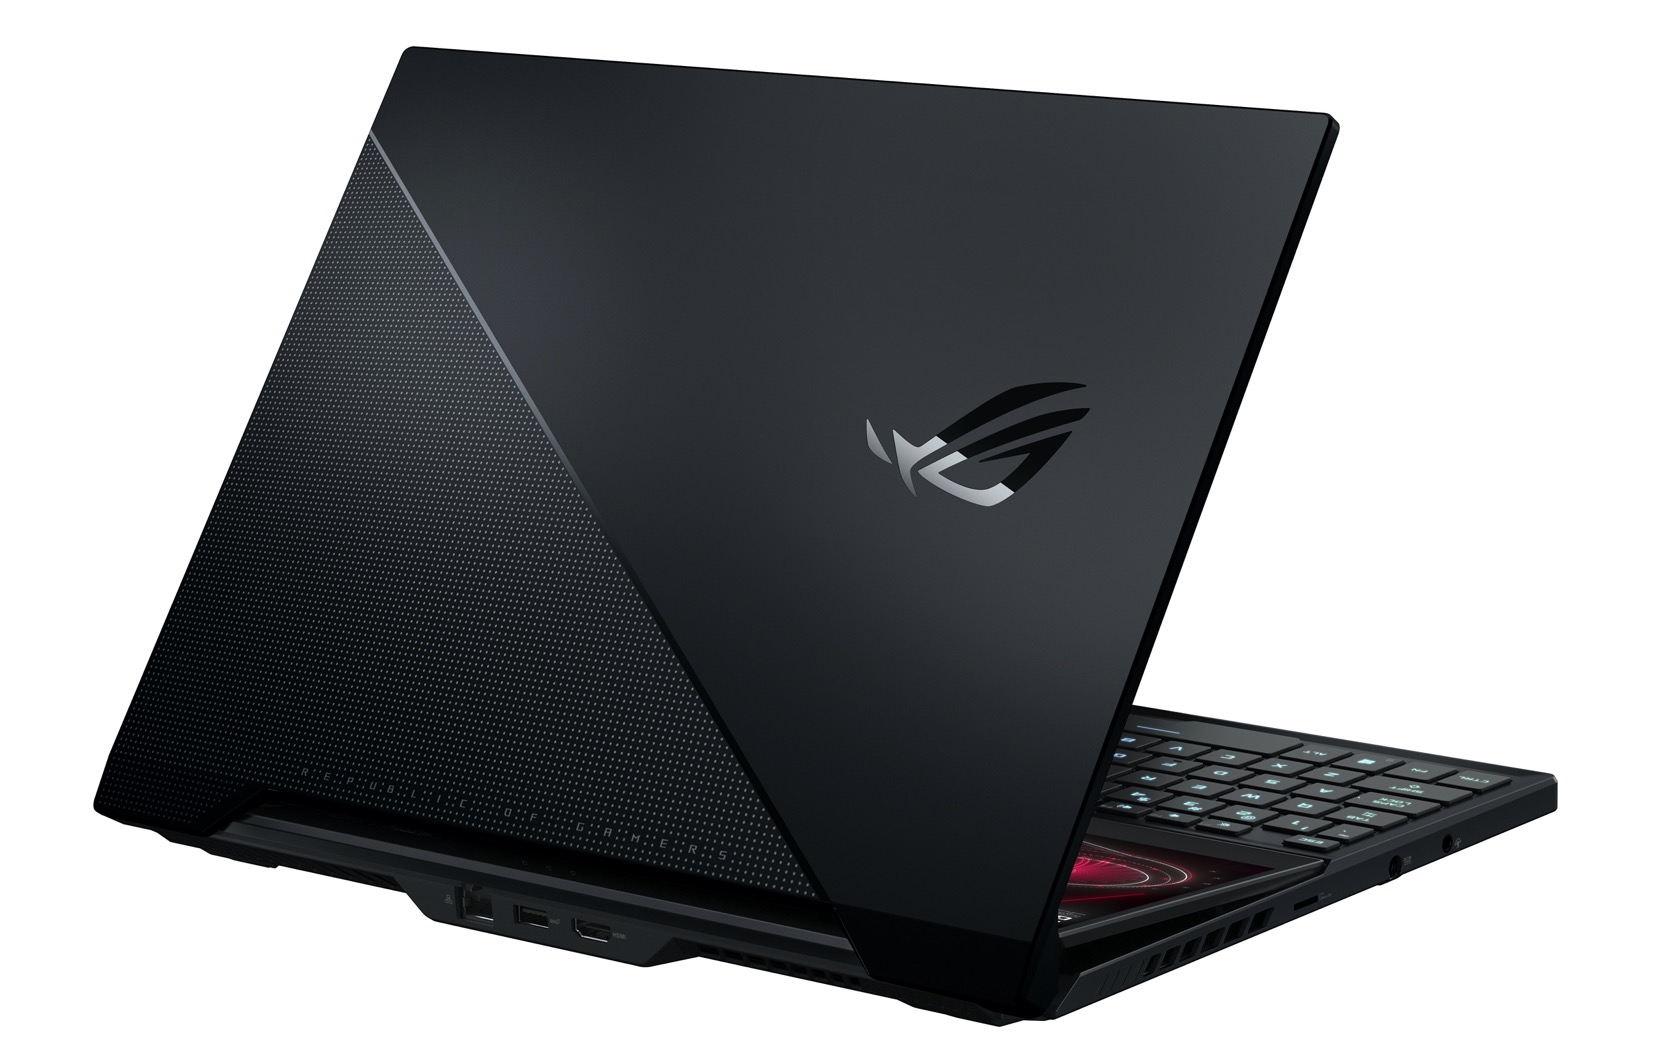 ASUS ROG Zephyrus Duo 15 SE adds 4K option and CPU/GPU upgrades to dual-screen laptop | SD News